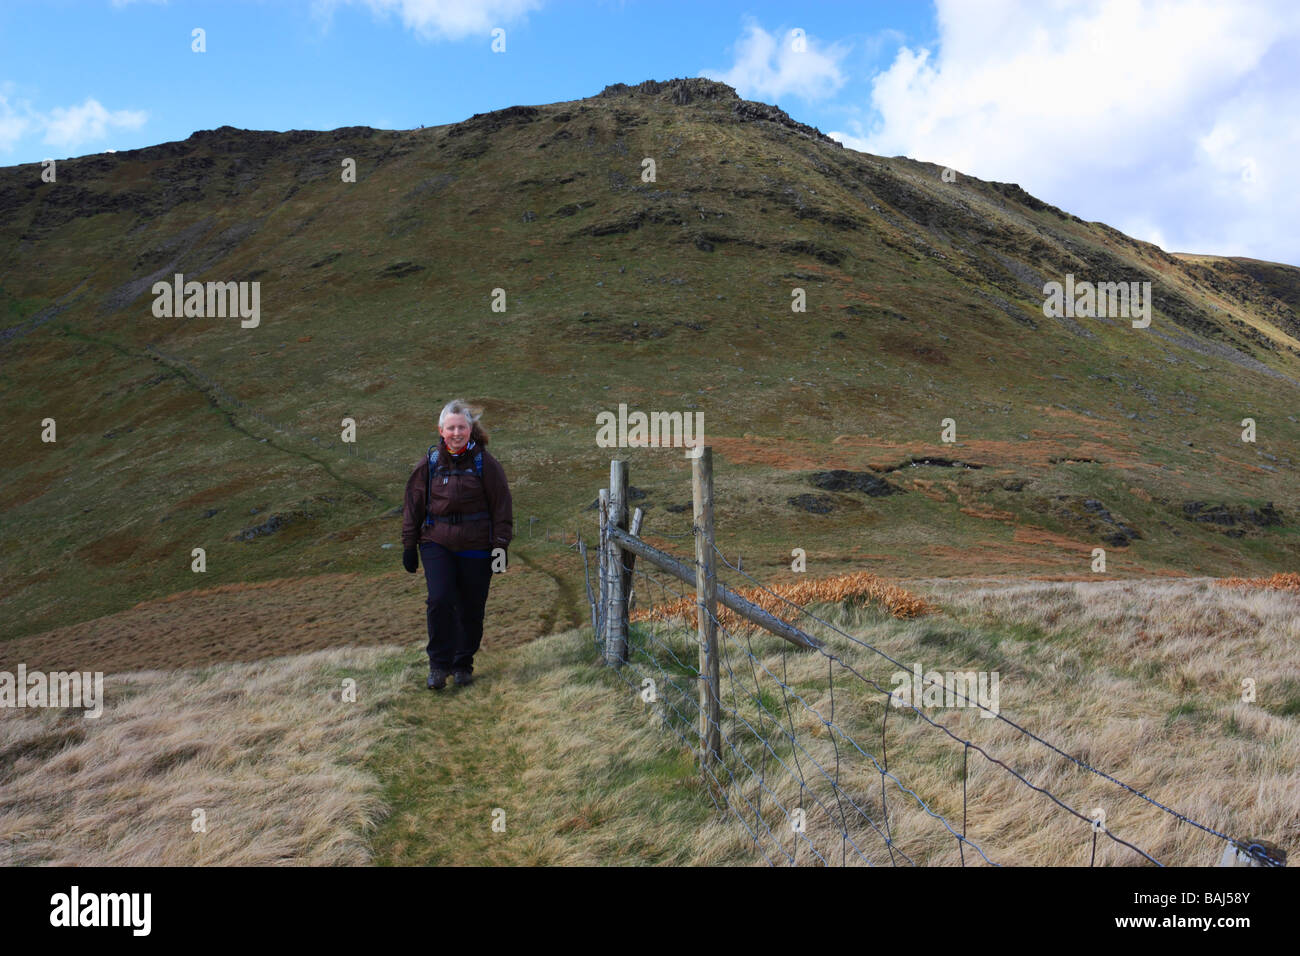 A female hillwalker in the Berwyn mountains in North Wales. The summit of Cadair Berwyn provides the backdrop - Stock Image